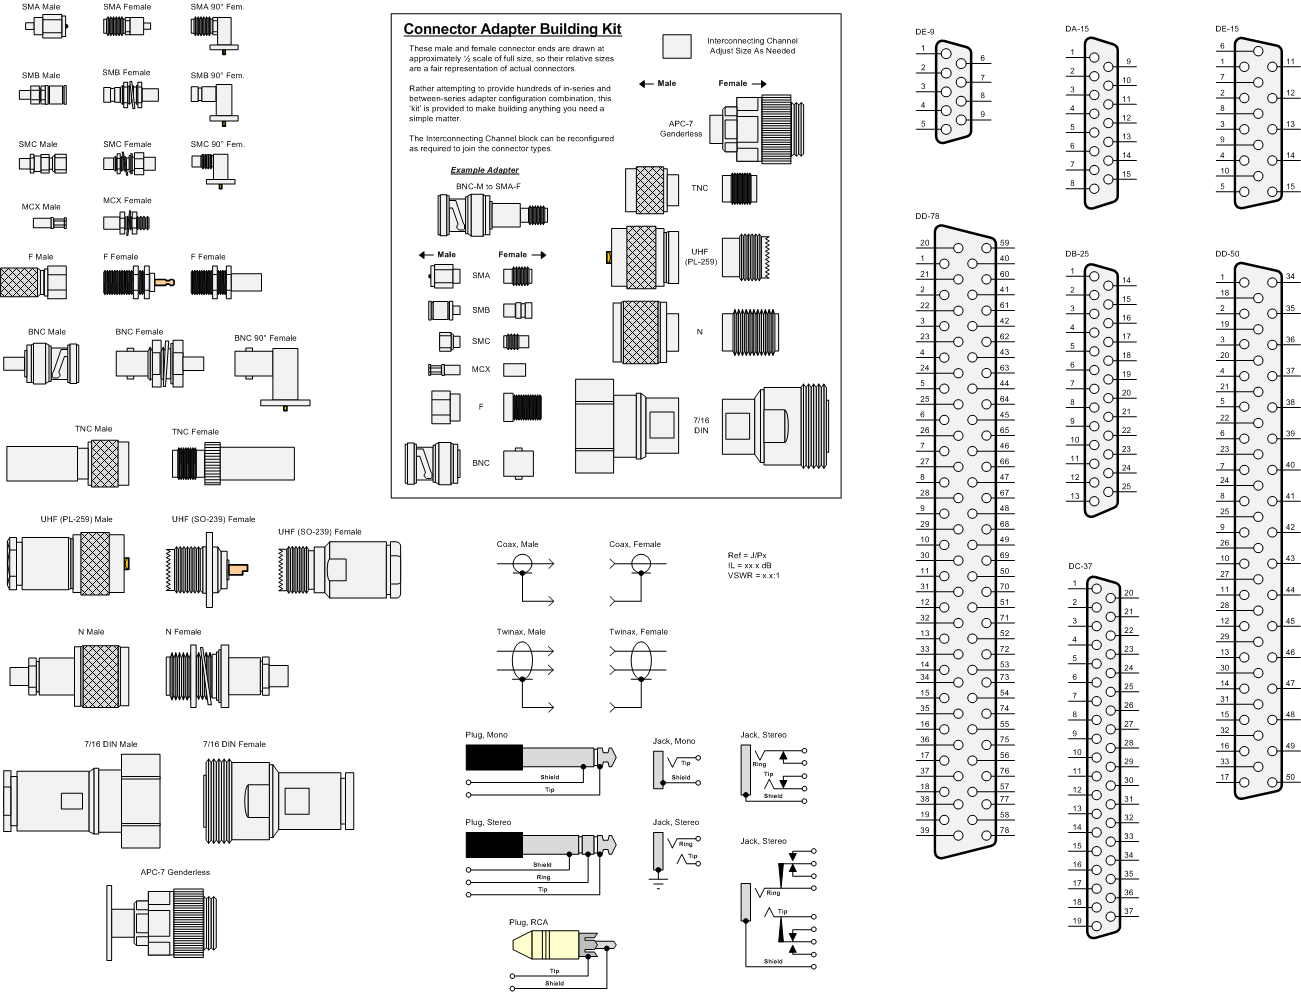 Rf Microwave Wireless Analog Block Diagrams Stencils Shapes For Diagram Maker Connectors Adapters Visio Cafe